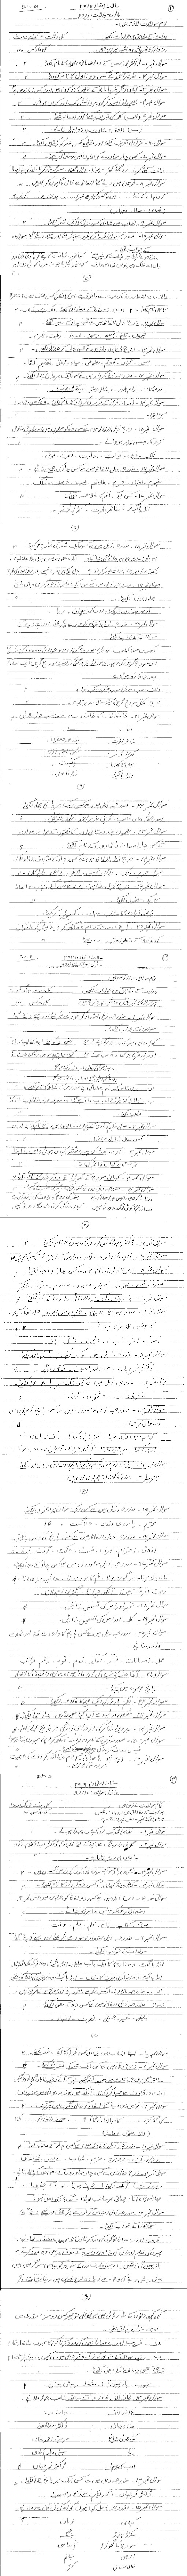 Bihar Board Class X Model Question Papers - Urdu